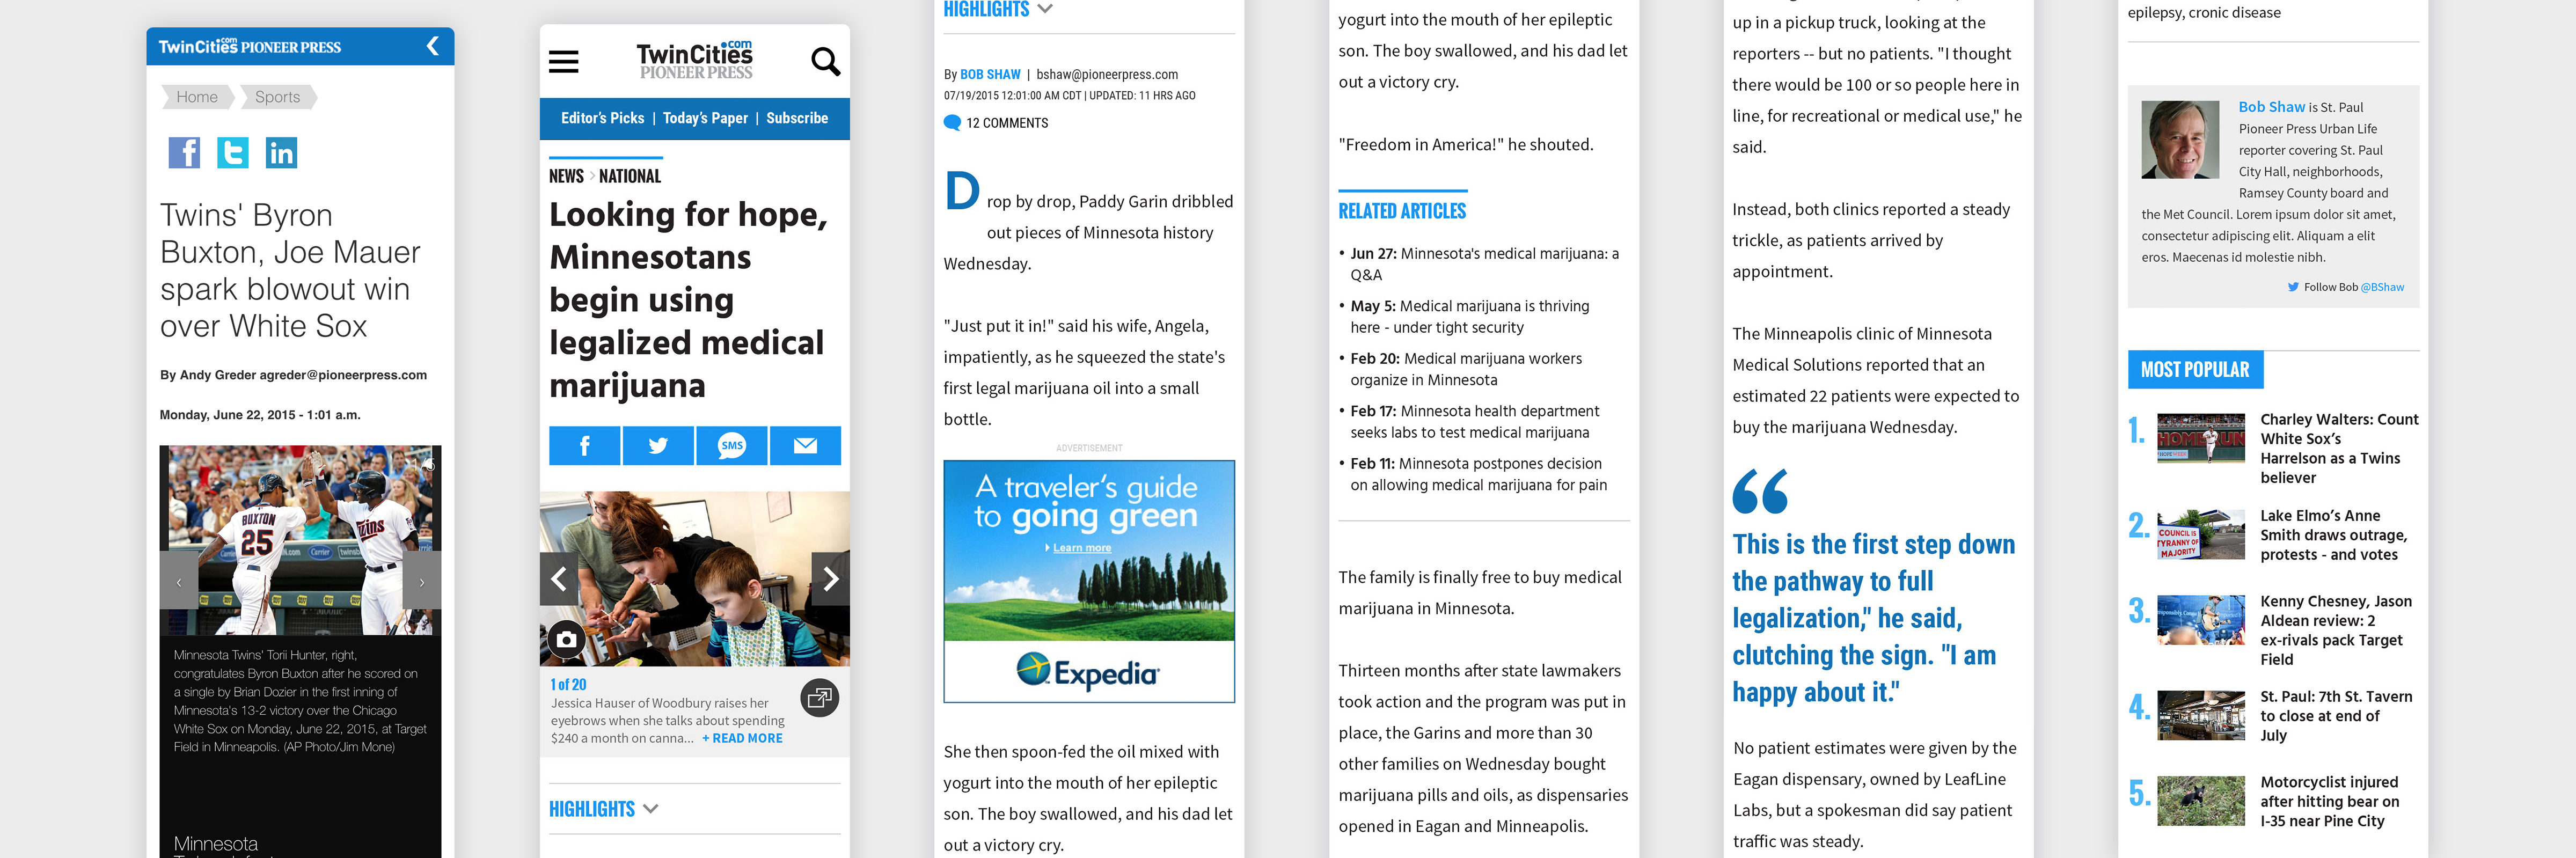 A series of thin screenshots of the mobile site, displaying headlines, images, drop quotes, related articles, and general link text, all in a light blue color scheme